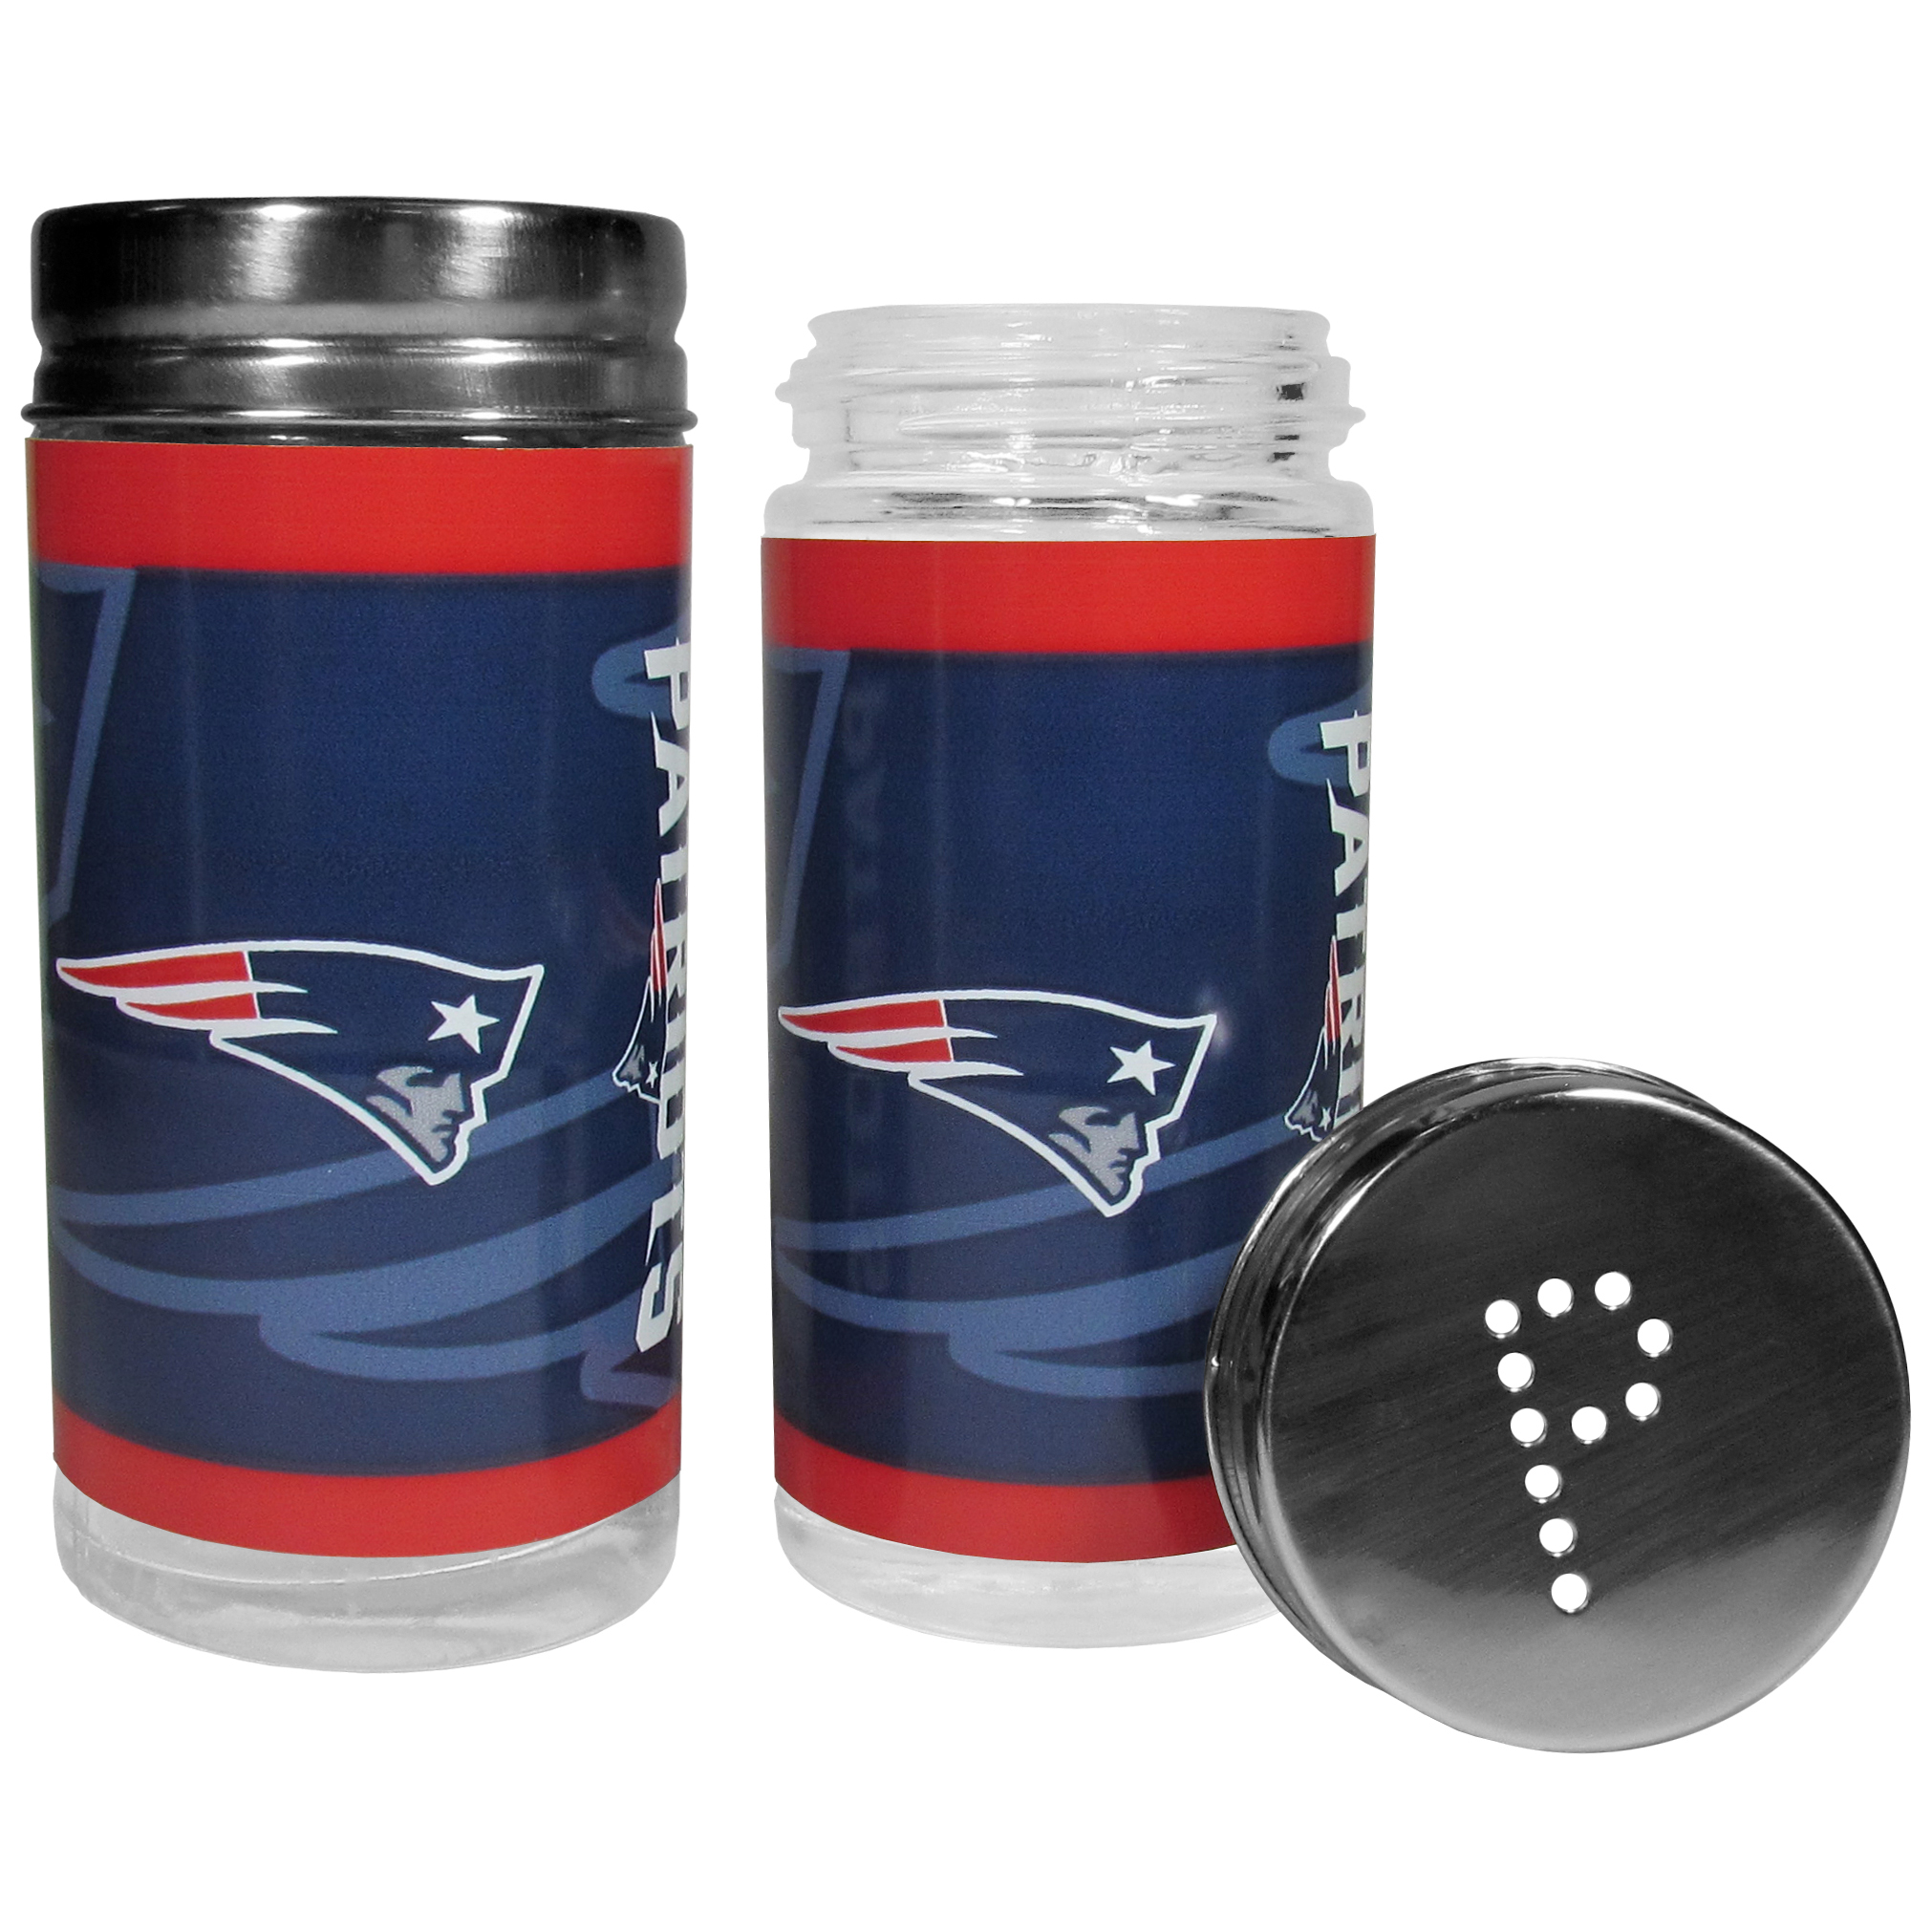 New England Patriots Tailgater Salt & Pepper Shakers - No tailgate party is complete without your New England Patriots salt & pepper shakers featuring bright team graphics. The glass shakers are 3.75 inches tall and the screw top lids have holes that spell out P and S. These team shakers are a great grill accessory whether you are barbecuing on the patio, picnicing or having a game day party.